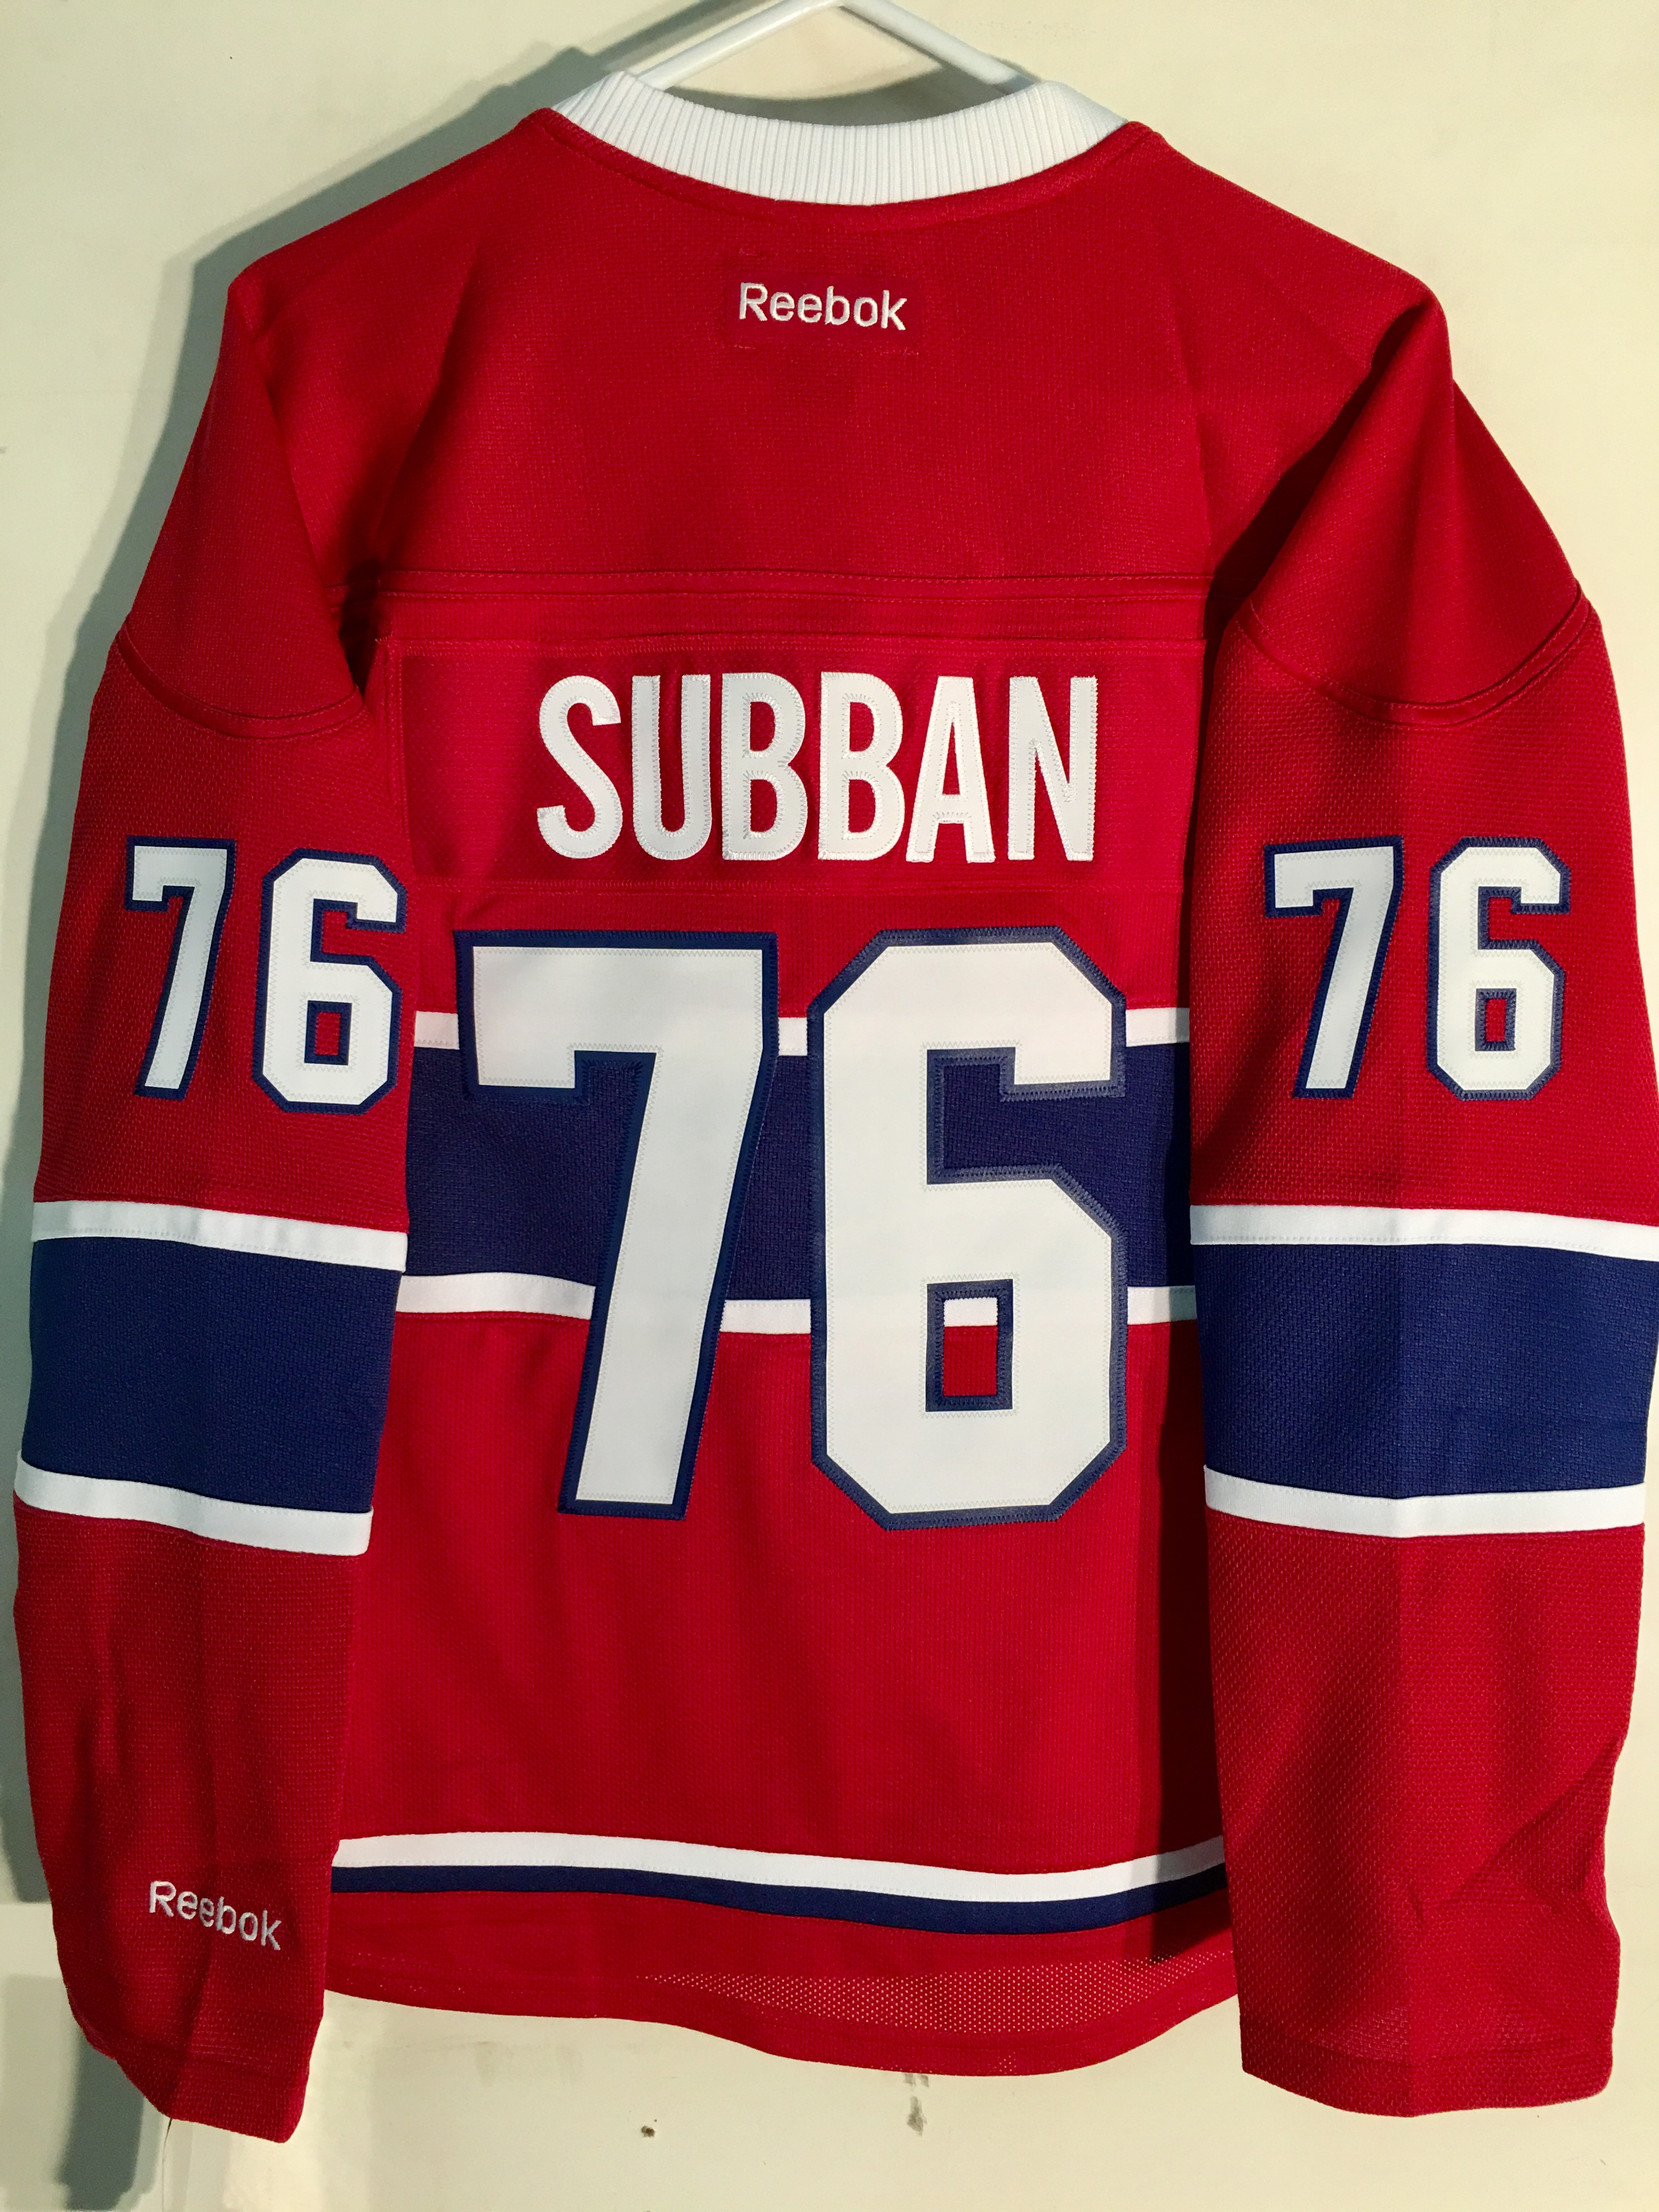 1003ebef3b8 Details about Reebok Women s Premier NHL Jersey Montreal Canadiens P.K.  Subban Red sz 2X